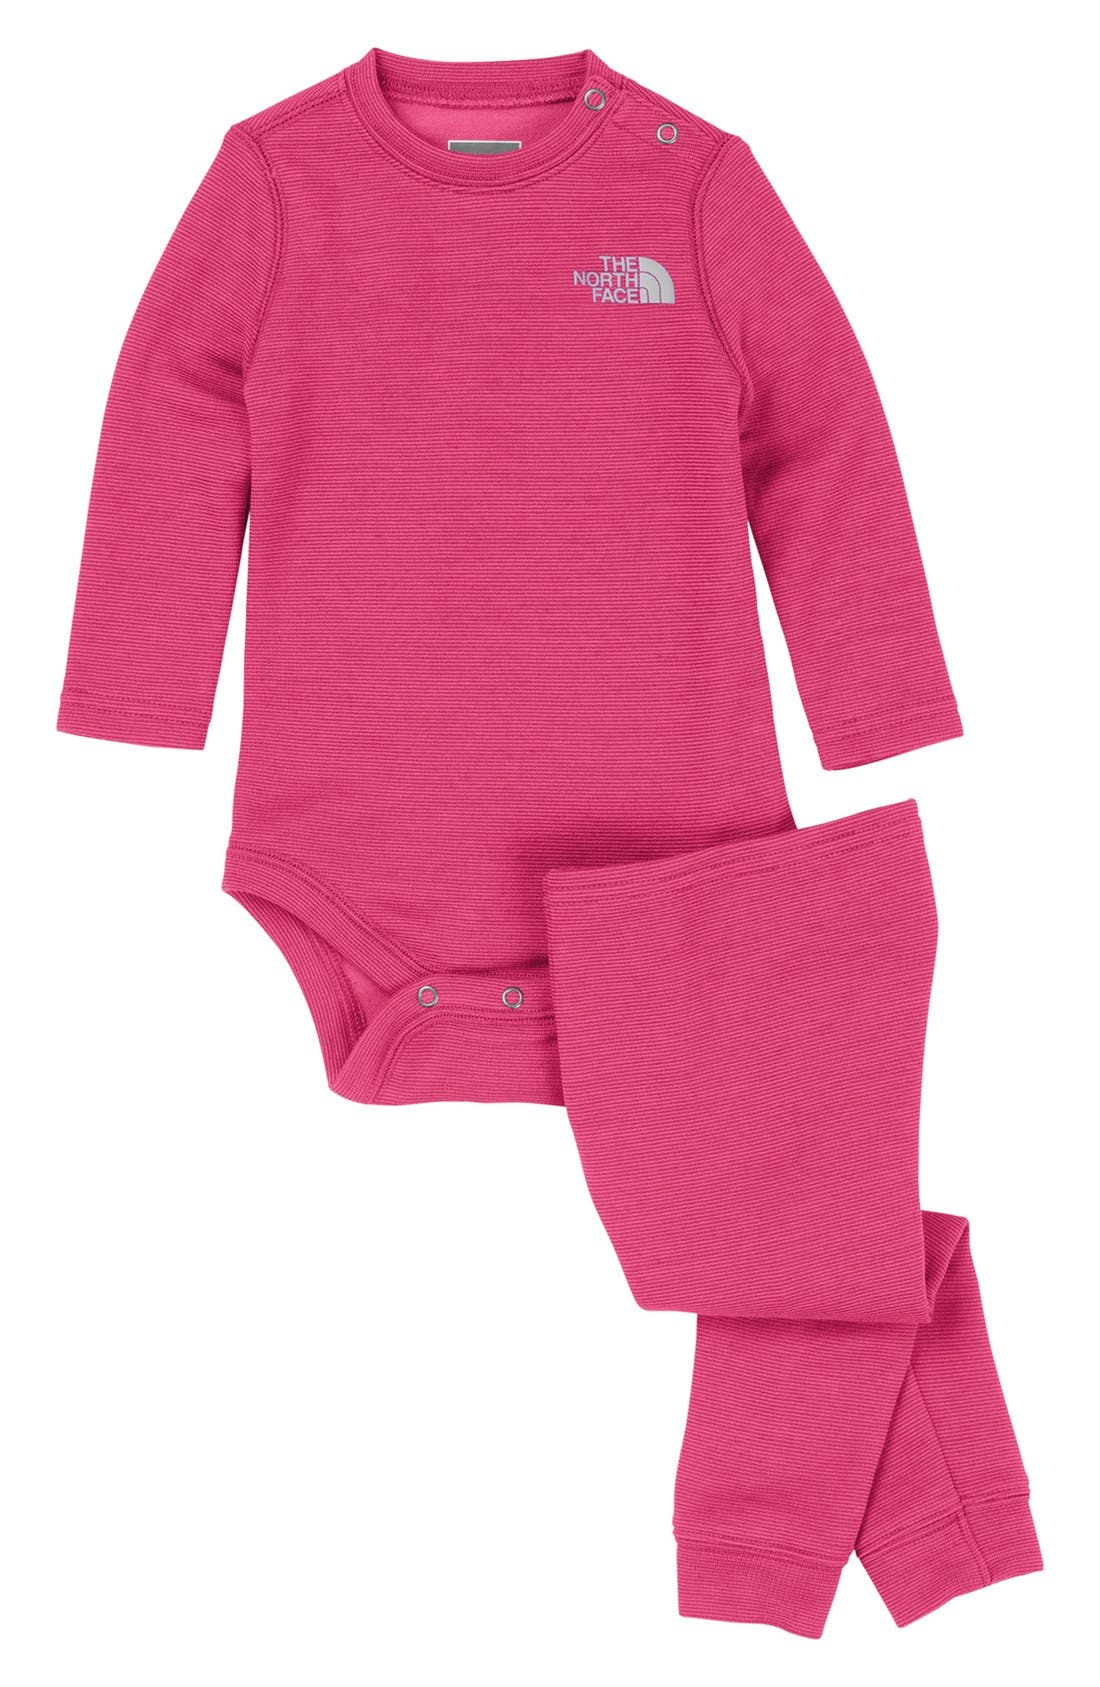 Alternate Image 1 Selected - The North Face 'Base Layer' Bodysuit & Leggings (Baby Girls)